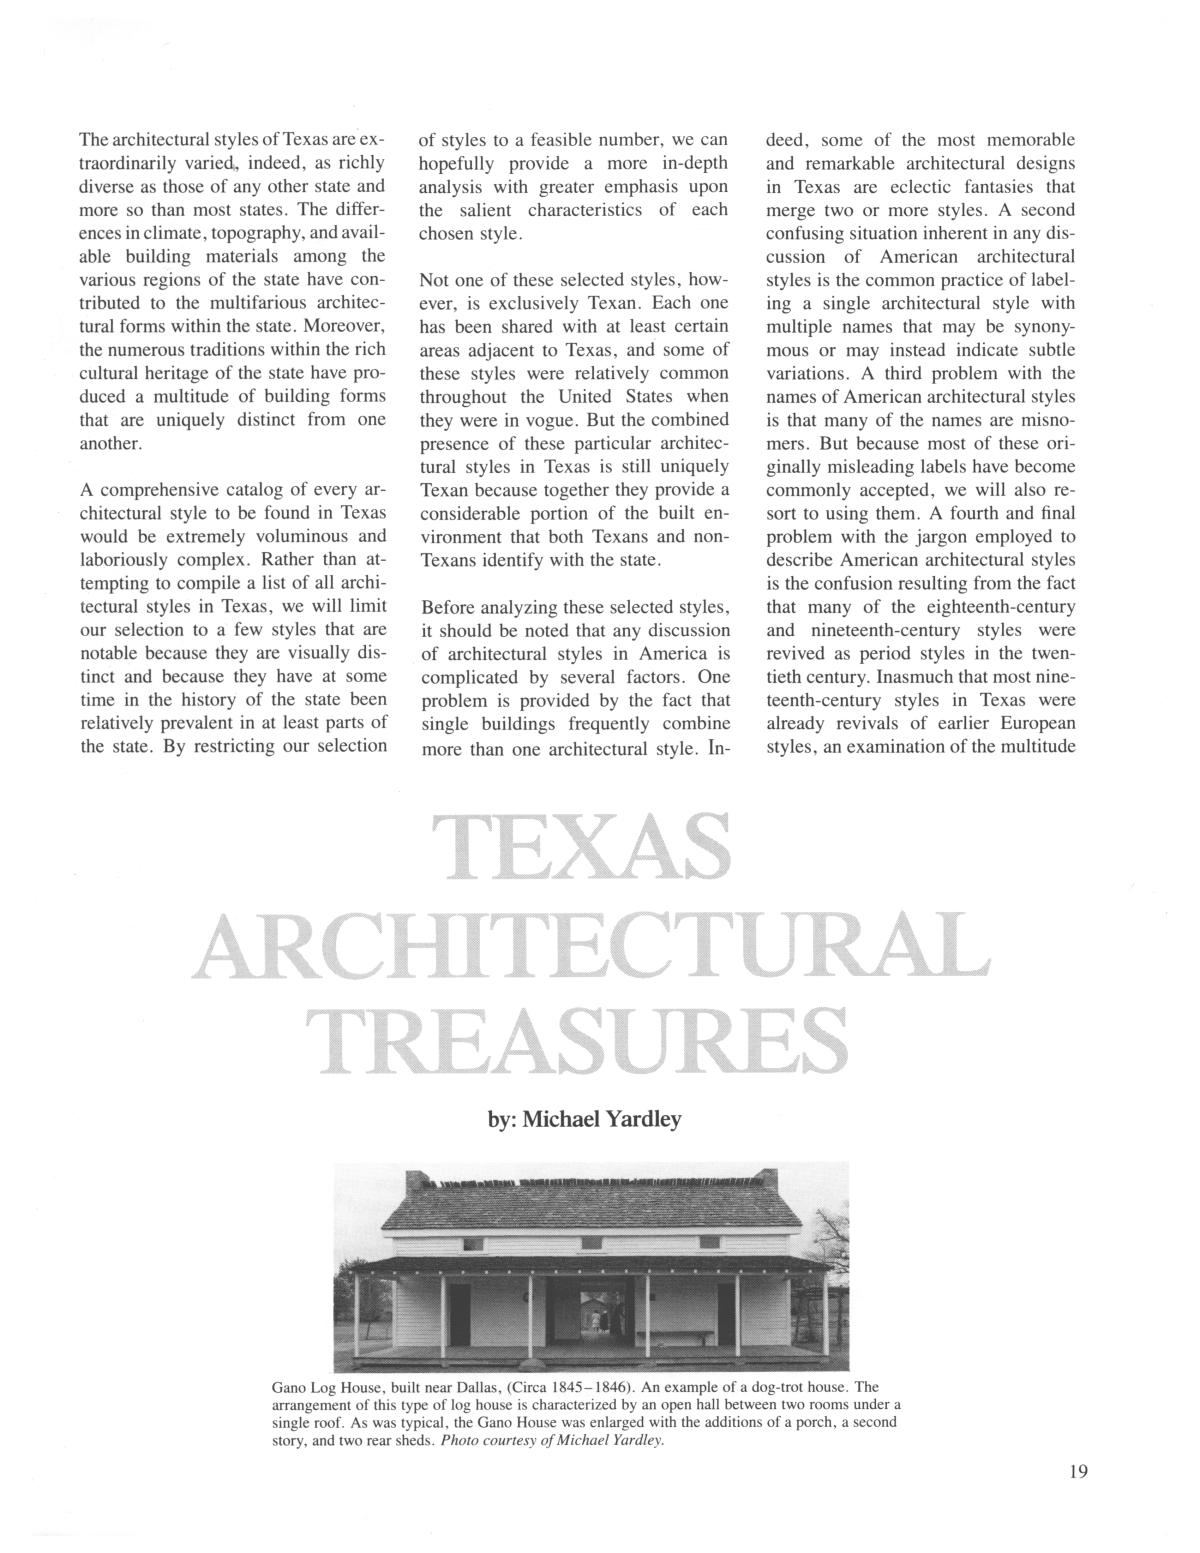 Texas Heritage, Winter 1985                                                                                                      19